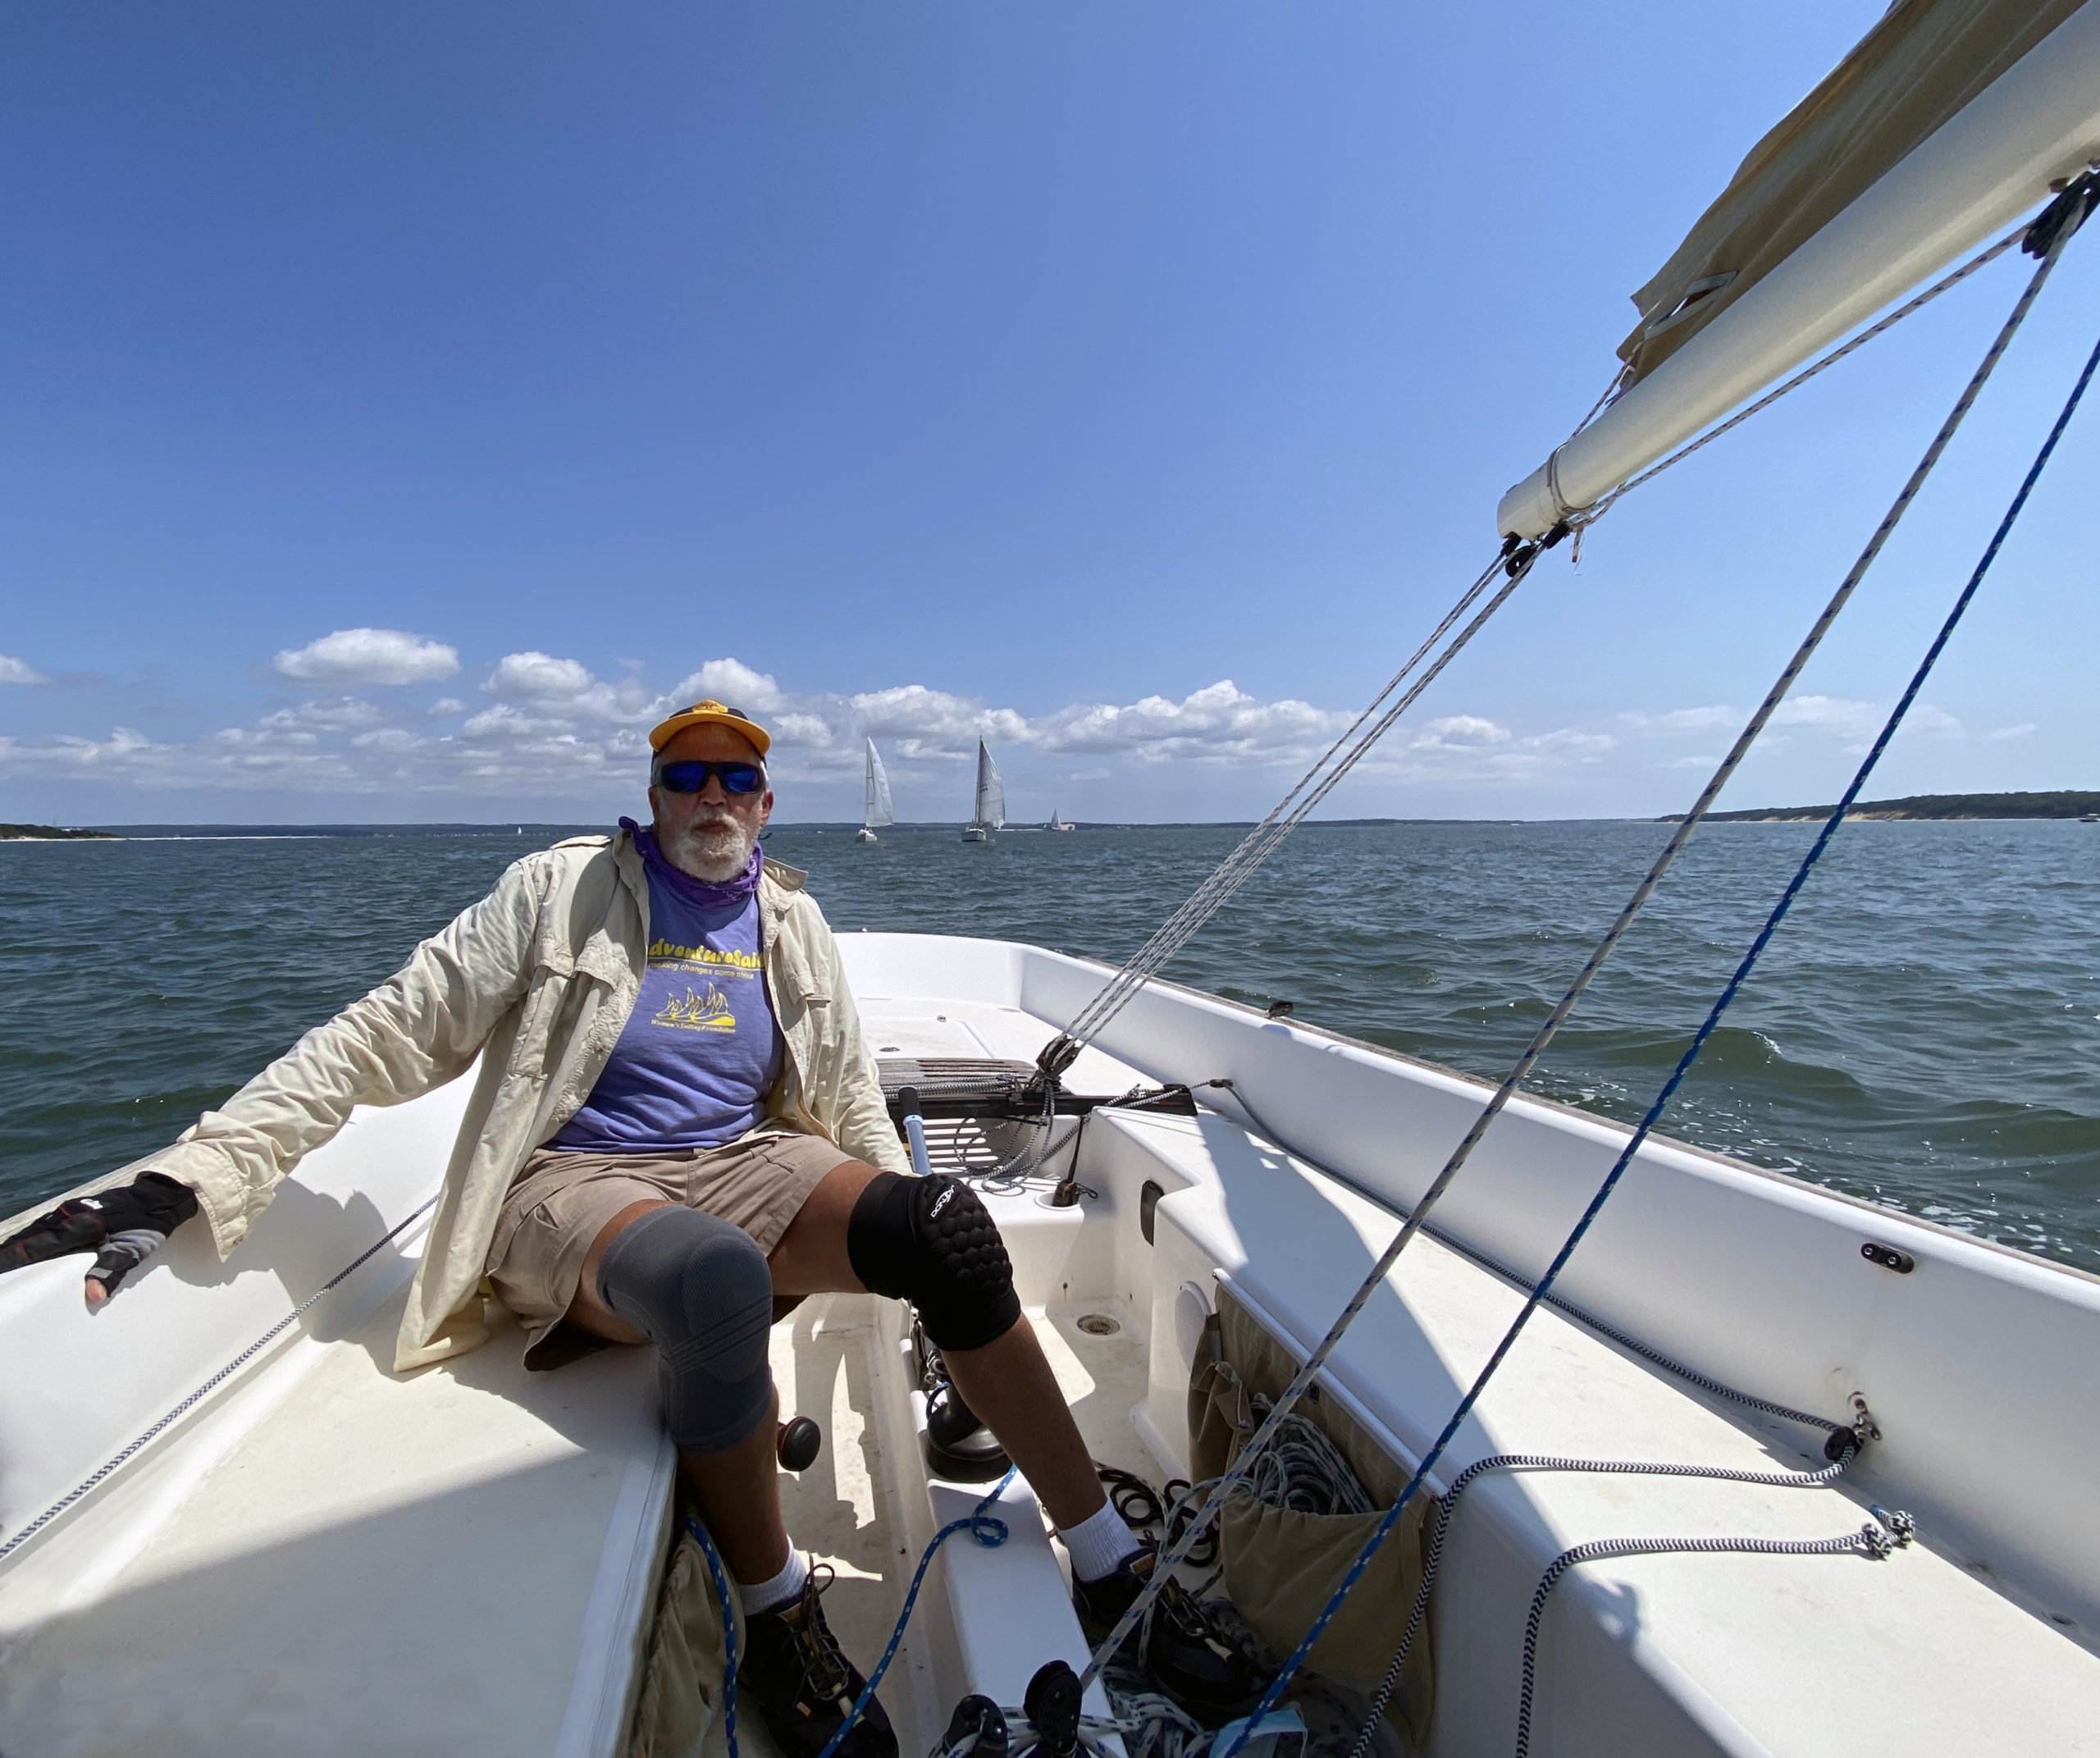 Michael Mella the helm of the Etchells e-33 yacht, Entropy during the Peconic Bay Sailing Association race on Saturday hosted by the New Suffolk Old Cove Yacht Club.         BILL EDWARDS